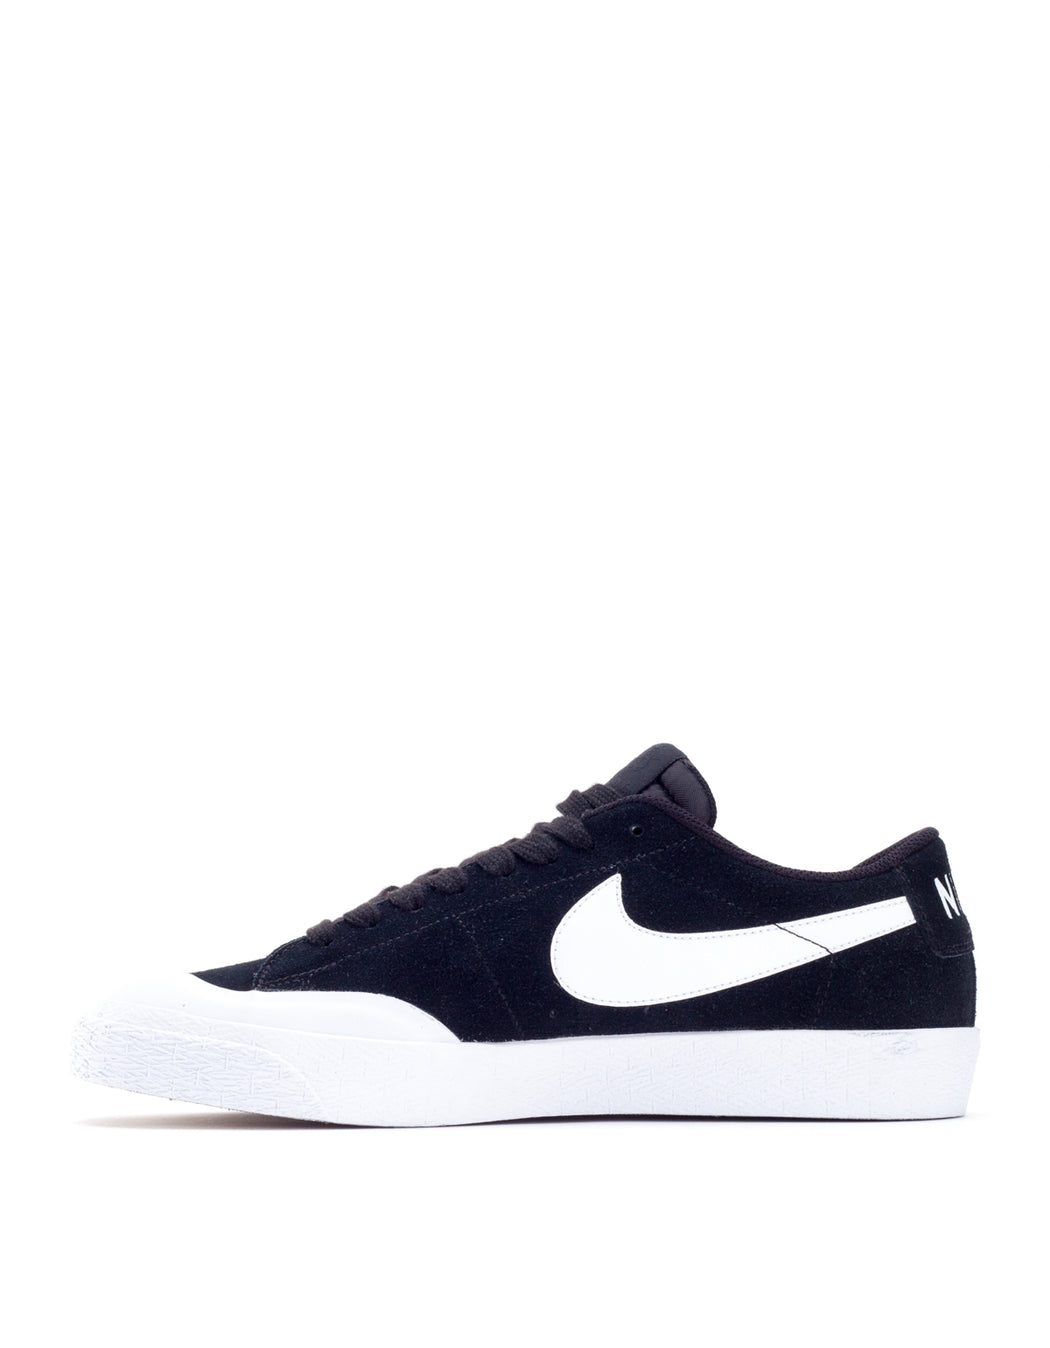 9065b2d8945e ... White - Sneaker Bar Detroit · Nike SB Zoom Blazer Low XT Black —  Goodnews Skateshop nike sb blazer zoom